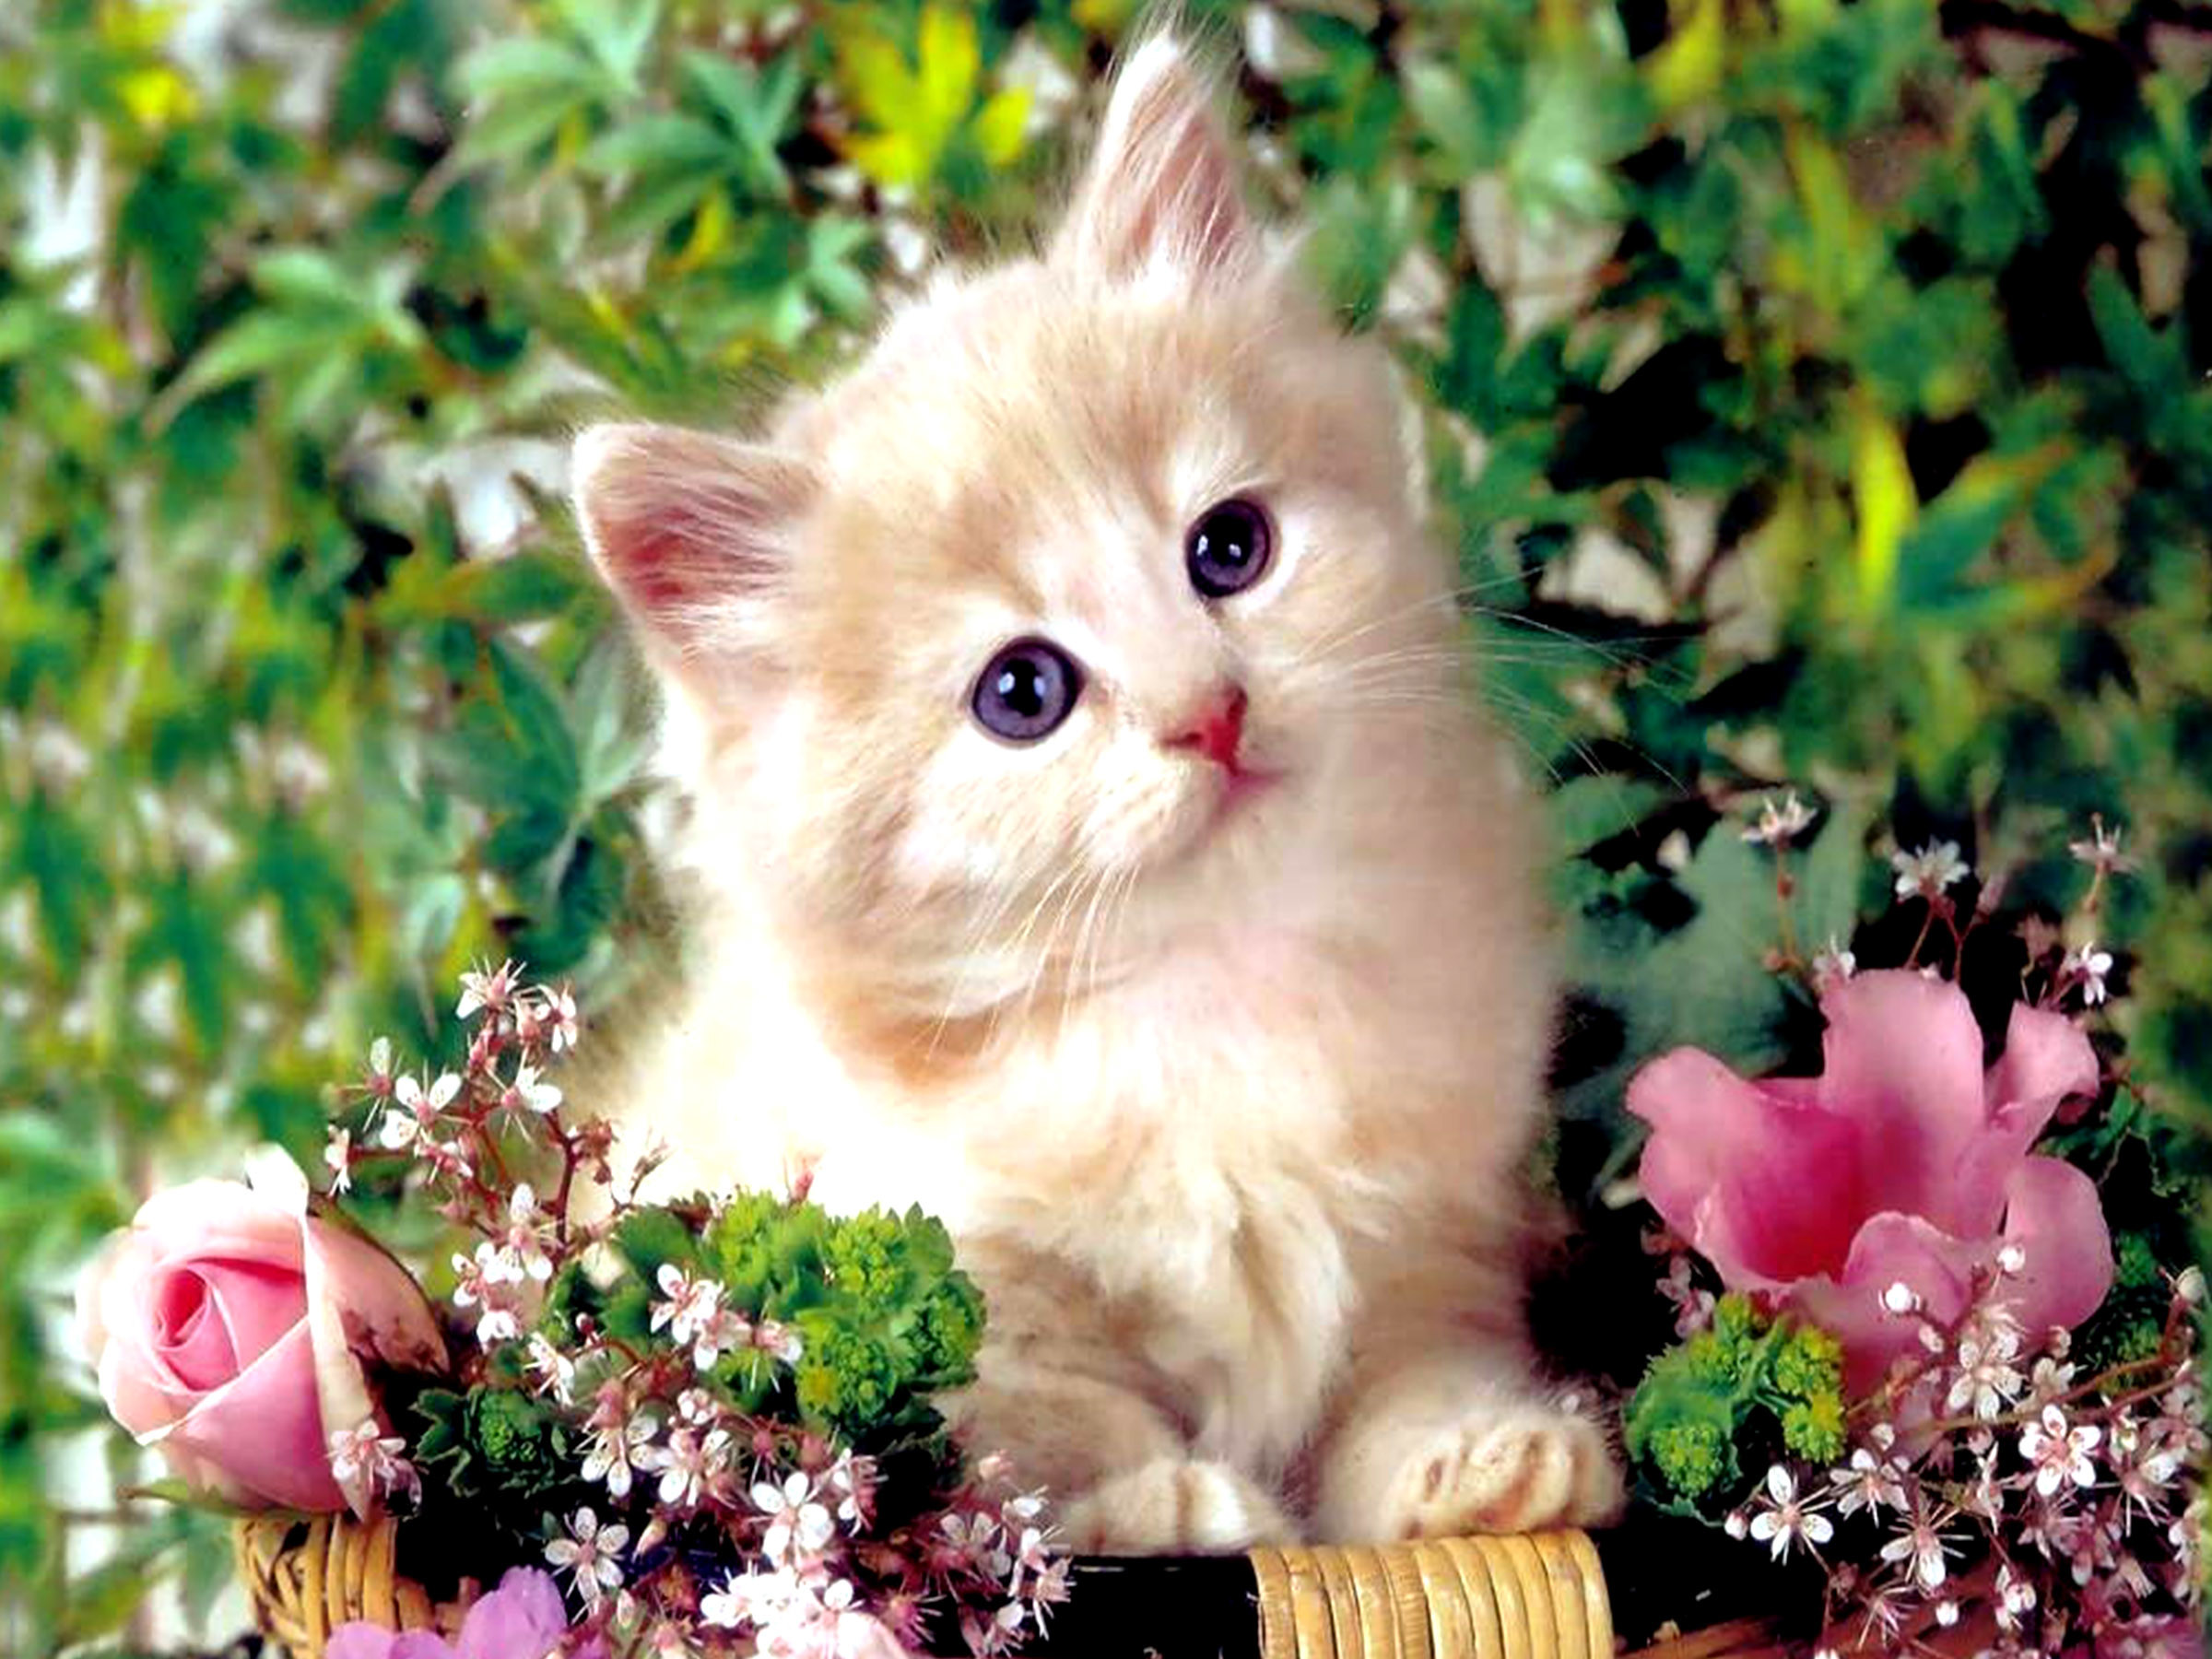 2400x1800 Persian Cat HD Wallpapers Backgrounds Wallpaper. Cute KittensCats And ...